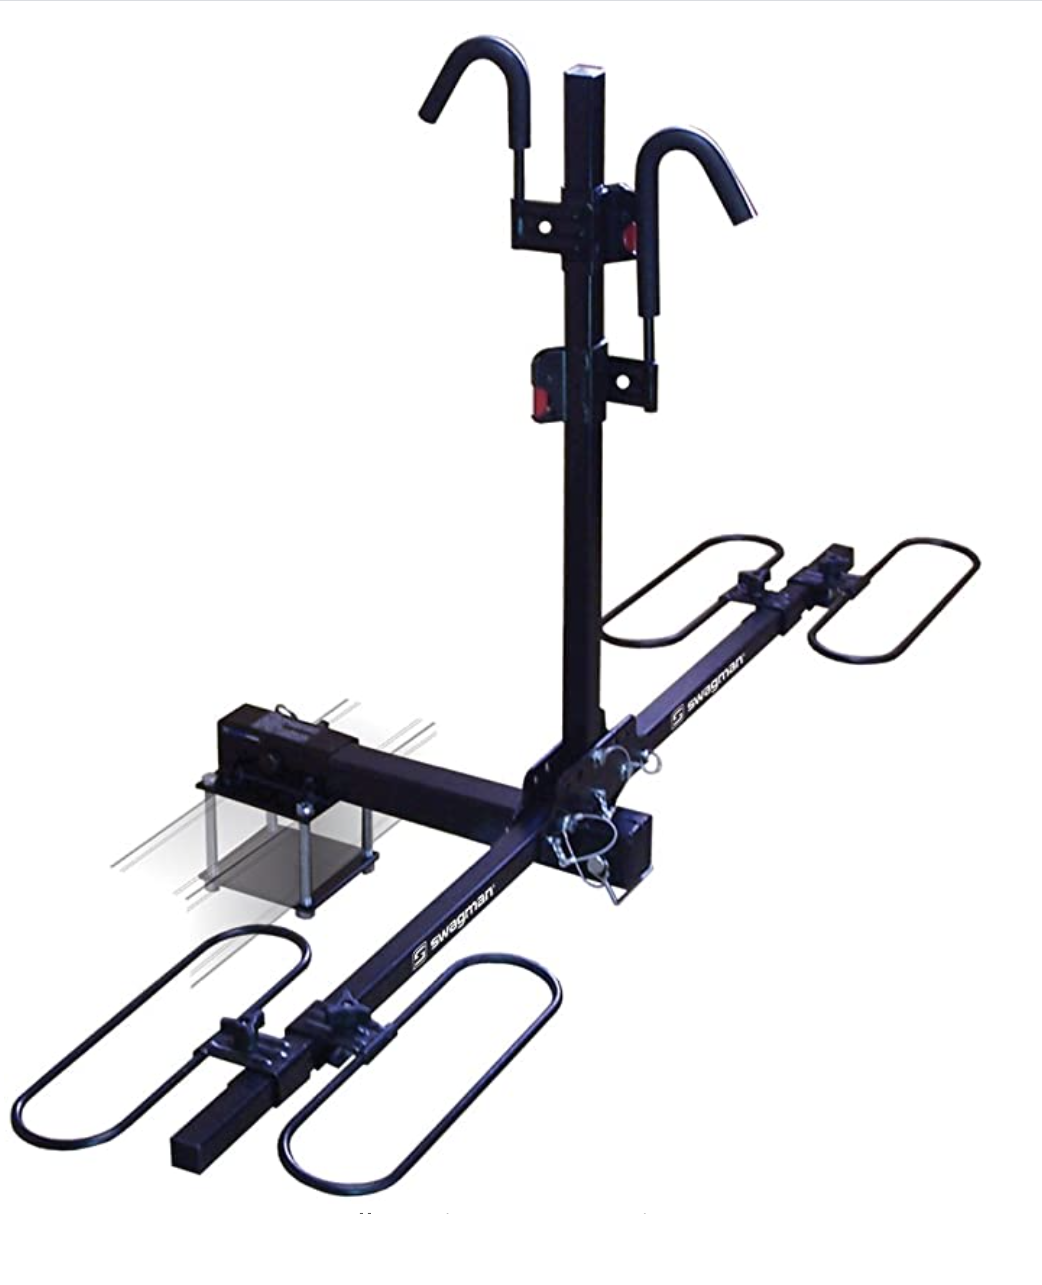 Swagman TRAVELER XC2 RV Hitch Rack